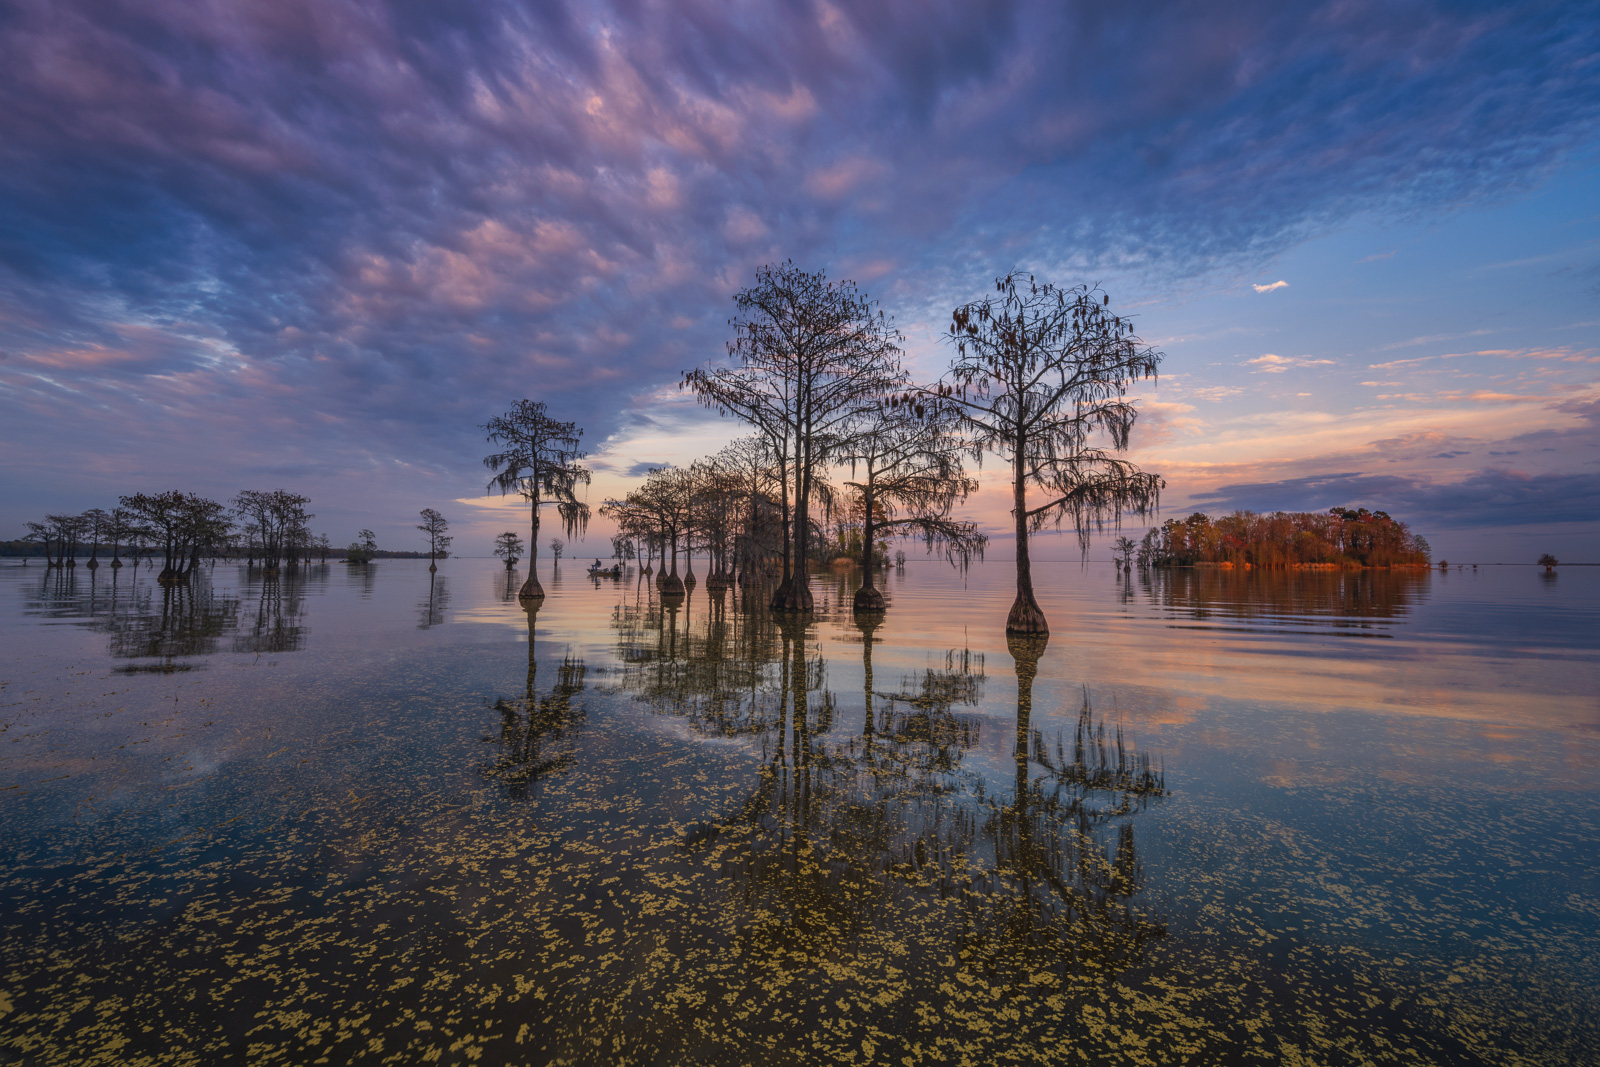 Bald Cypress Trees reflecting in the calm waters of Lake Moultrie at sunset.